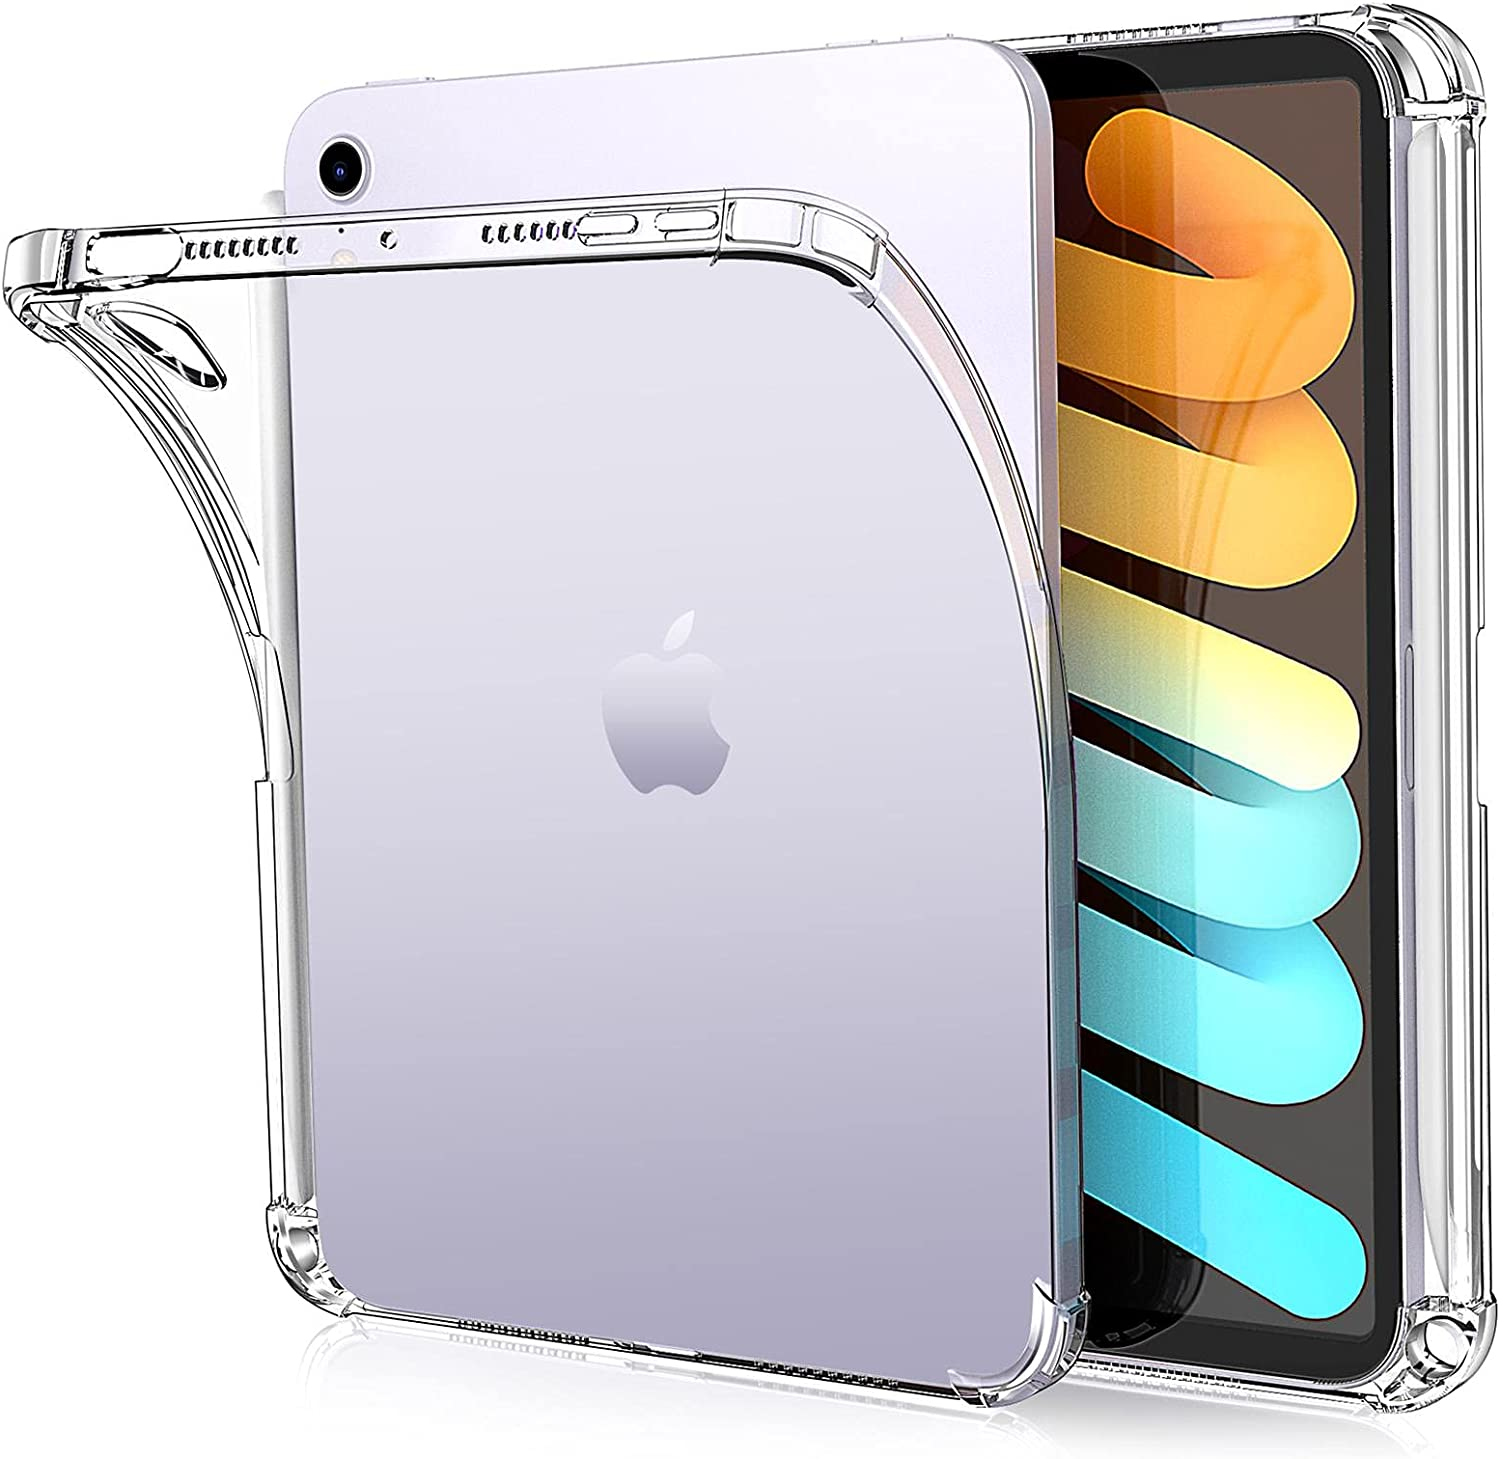 ZtotopCases Clear Case for iPad Mini 6 2021 with Pencil Holder, Ultra Slim Transparent Soft TPU Back Cover Skin for iPad Mini 6th Generation 8.3 Inch, Clear